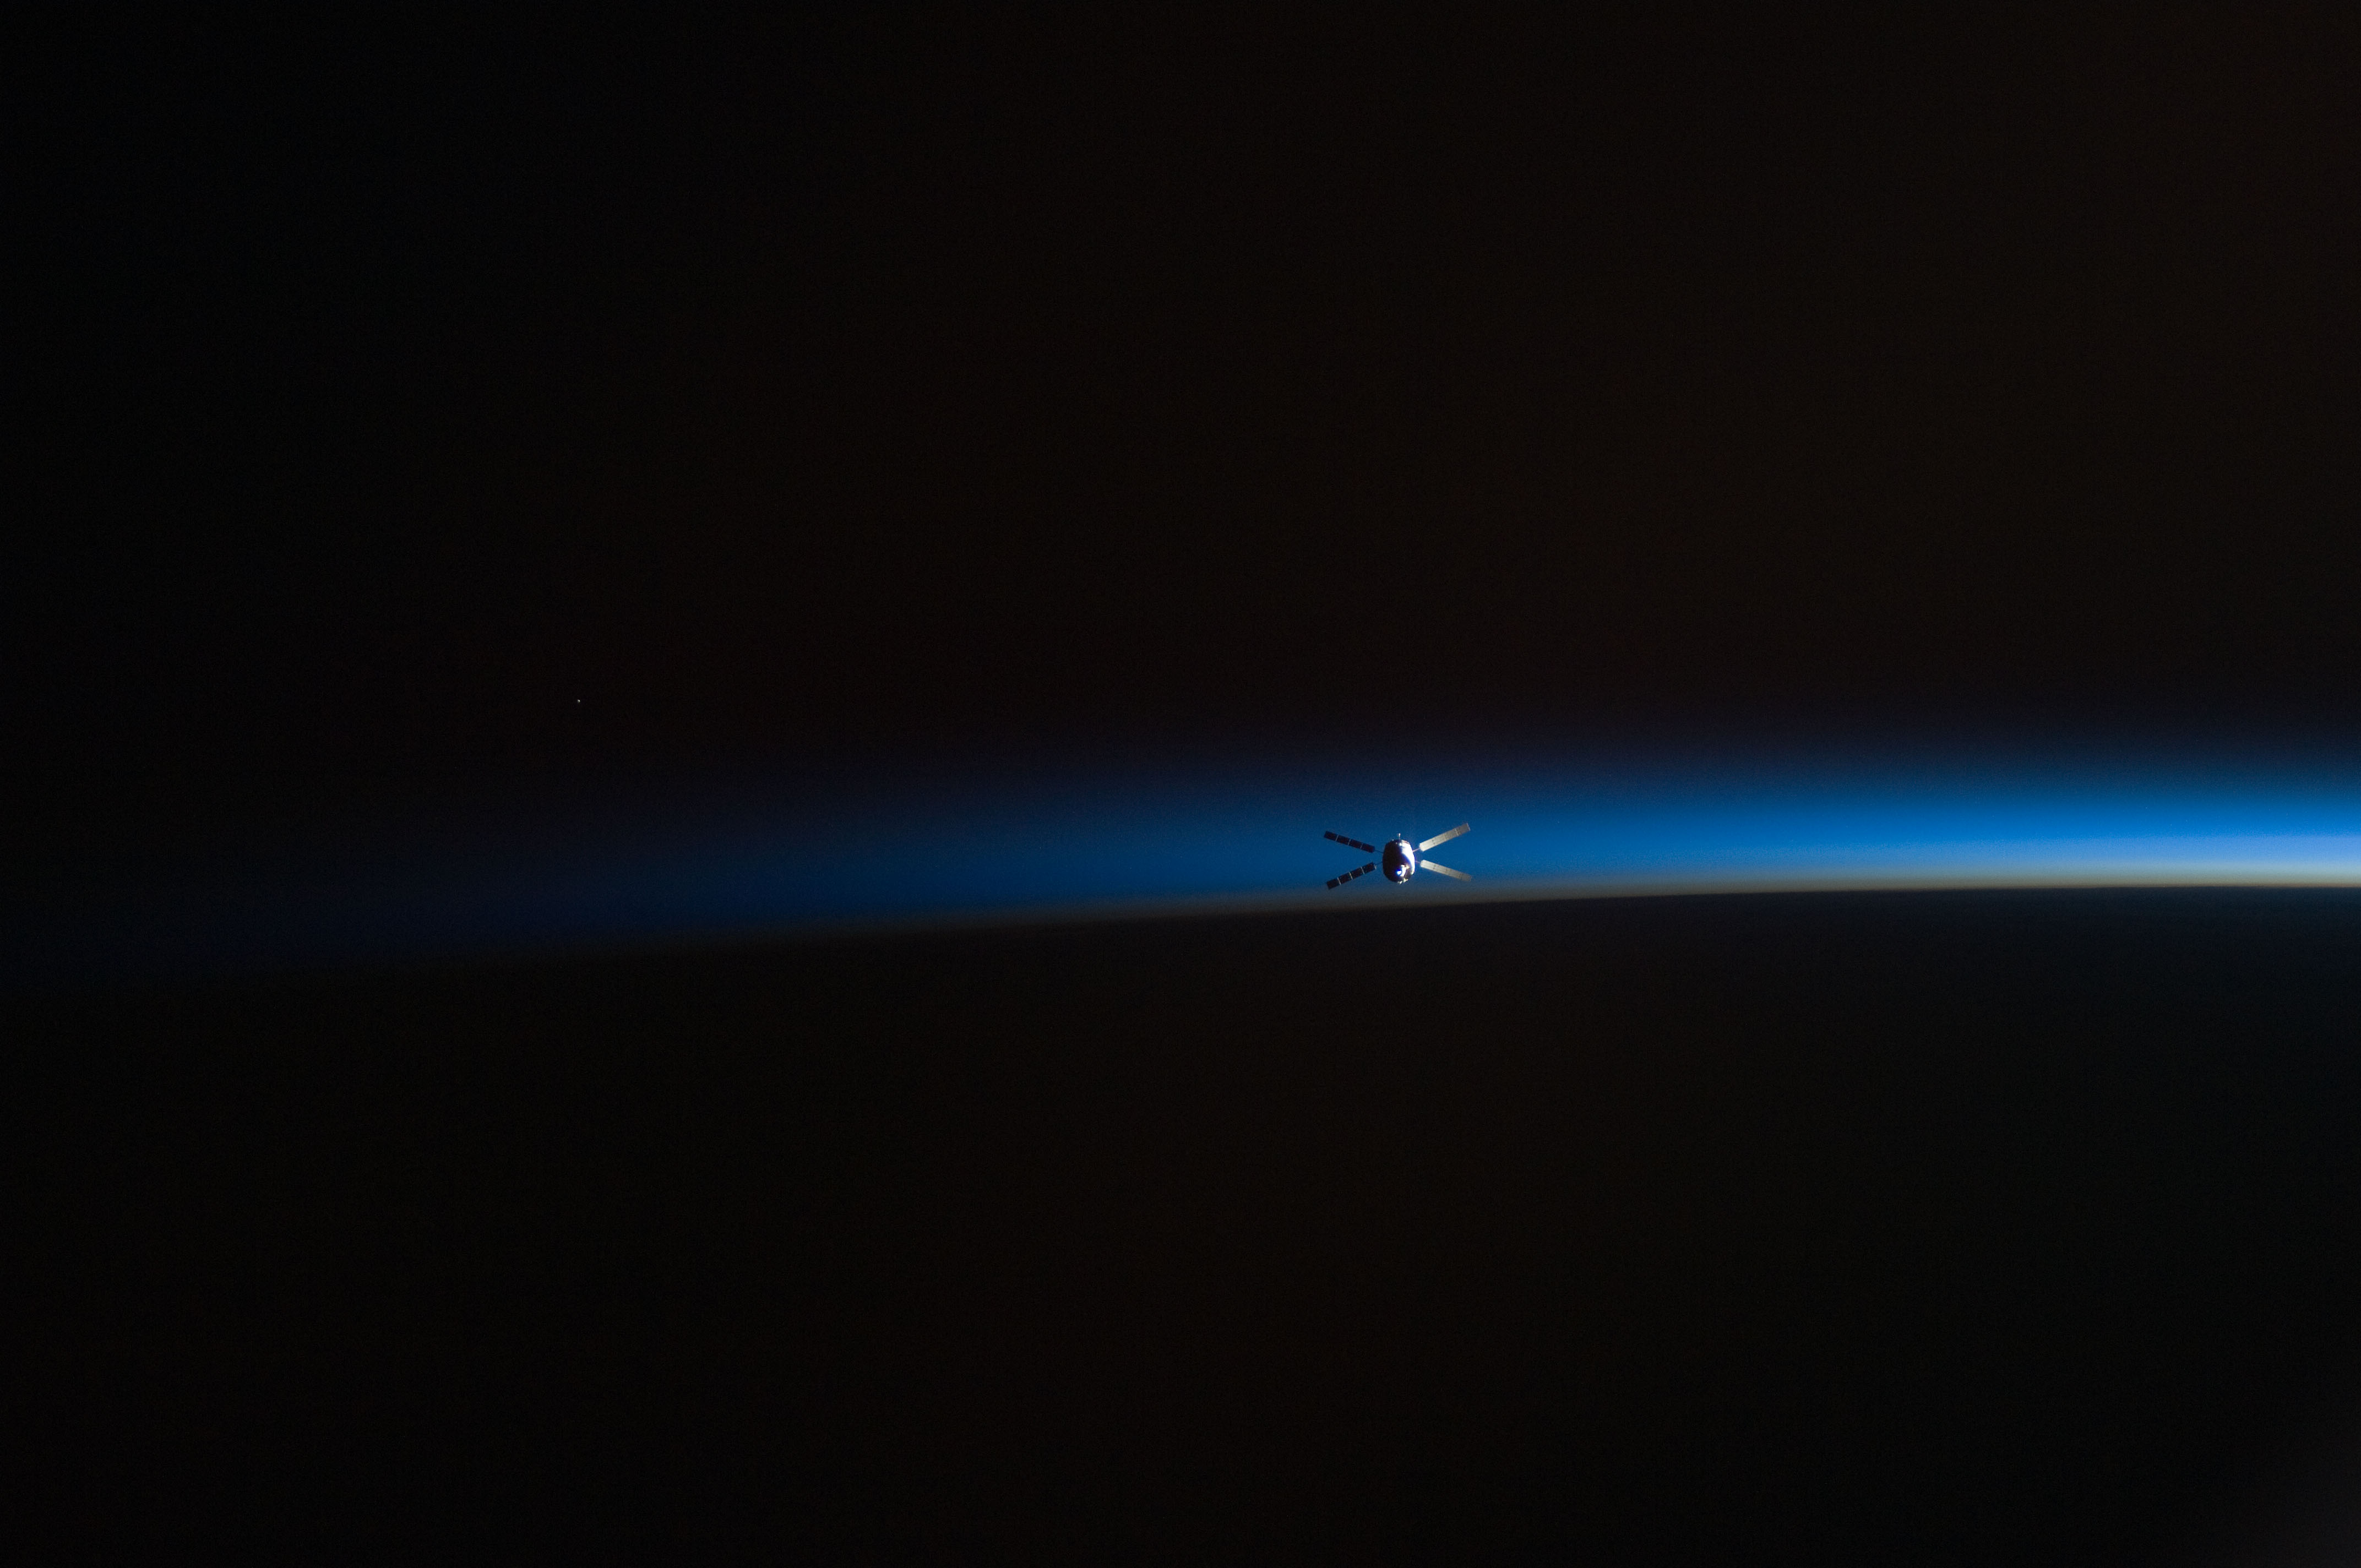 File:ATV-2 departs the ISS 4.jpg - Wikimedia Commons